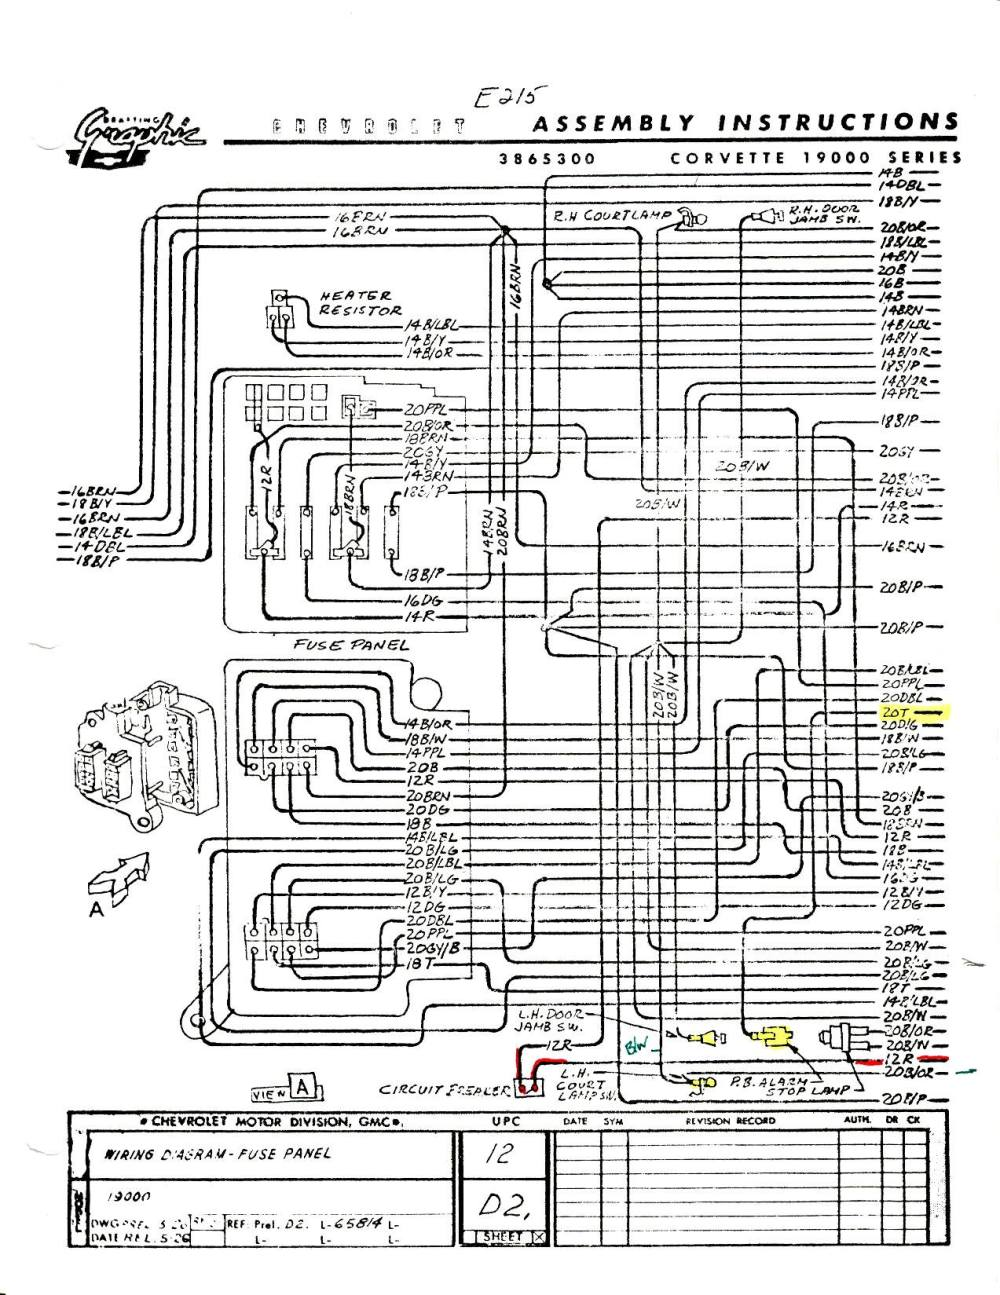 medium resolution of 1960 chevy ignition switch wiring diagram wiring library 1968 corvette dash wiring diagram c4 corvette dash